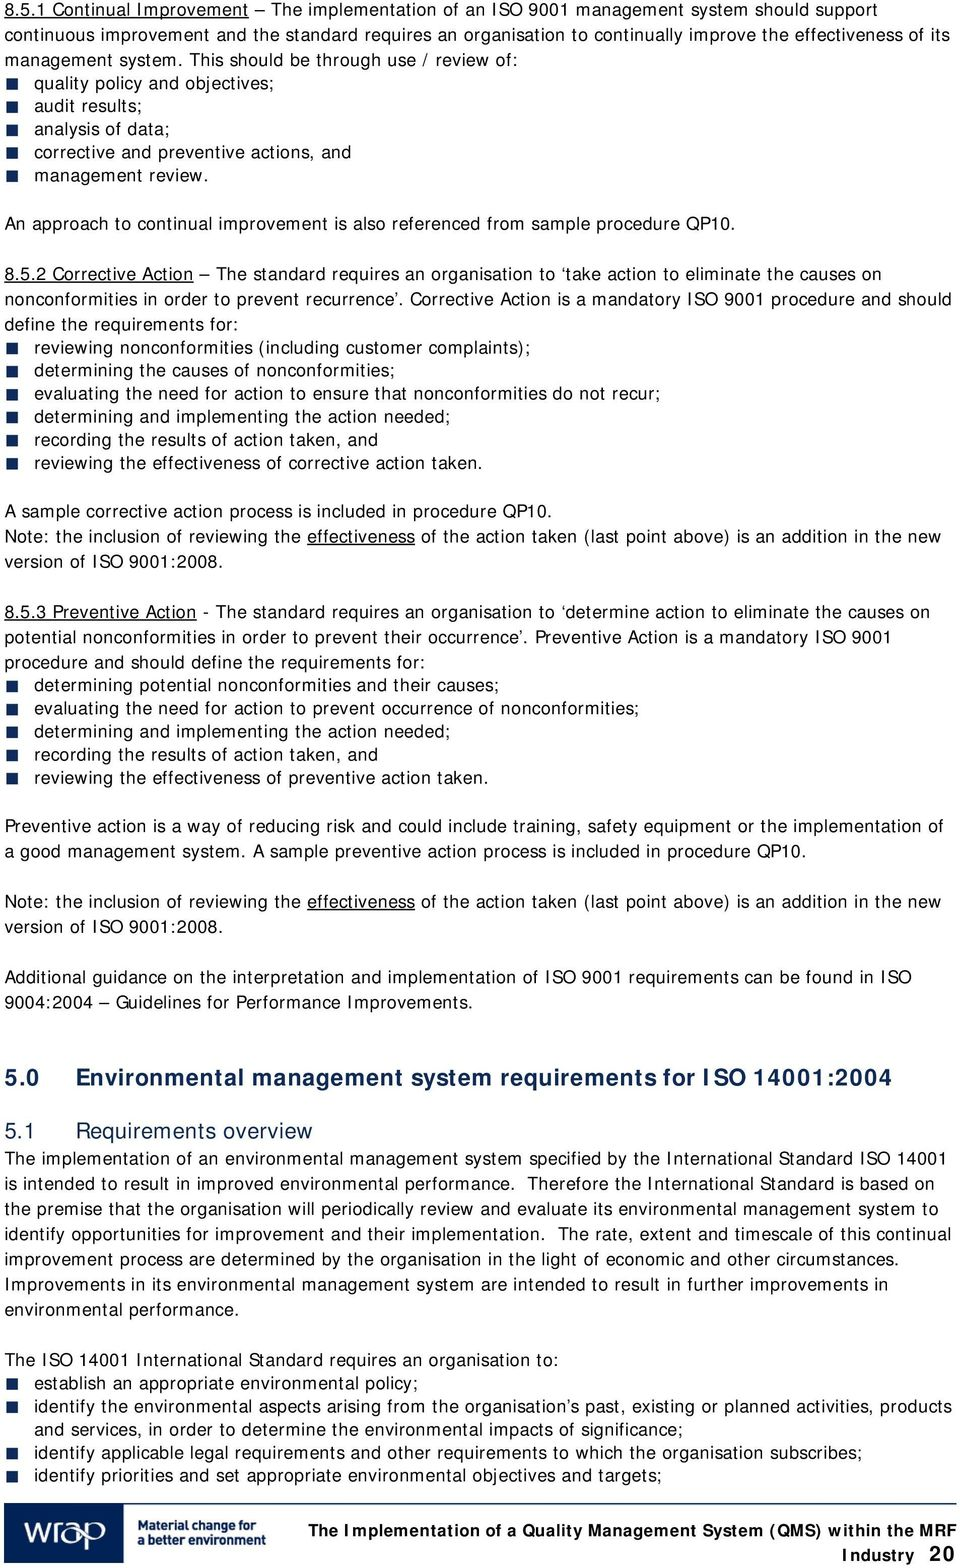 iso 9001 2015 quality manual doc